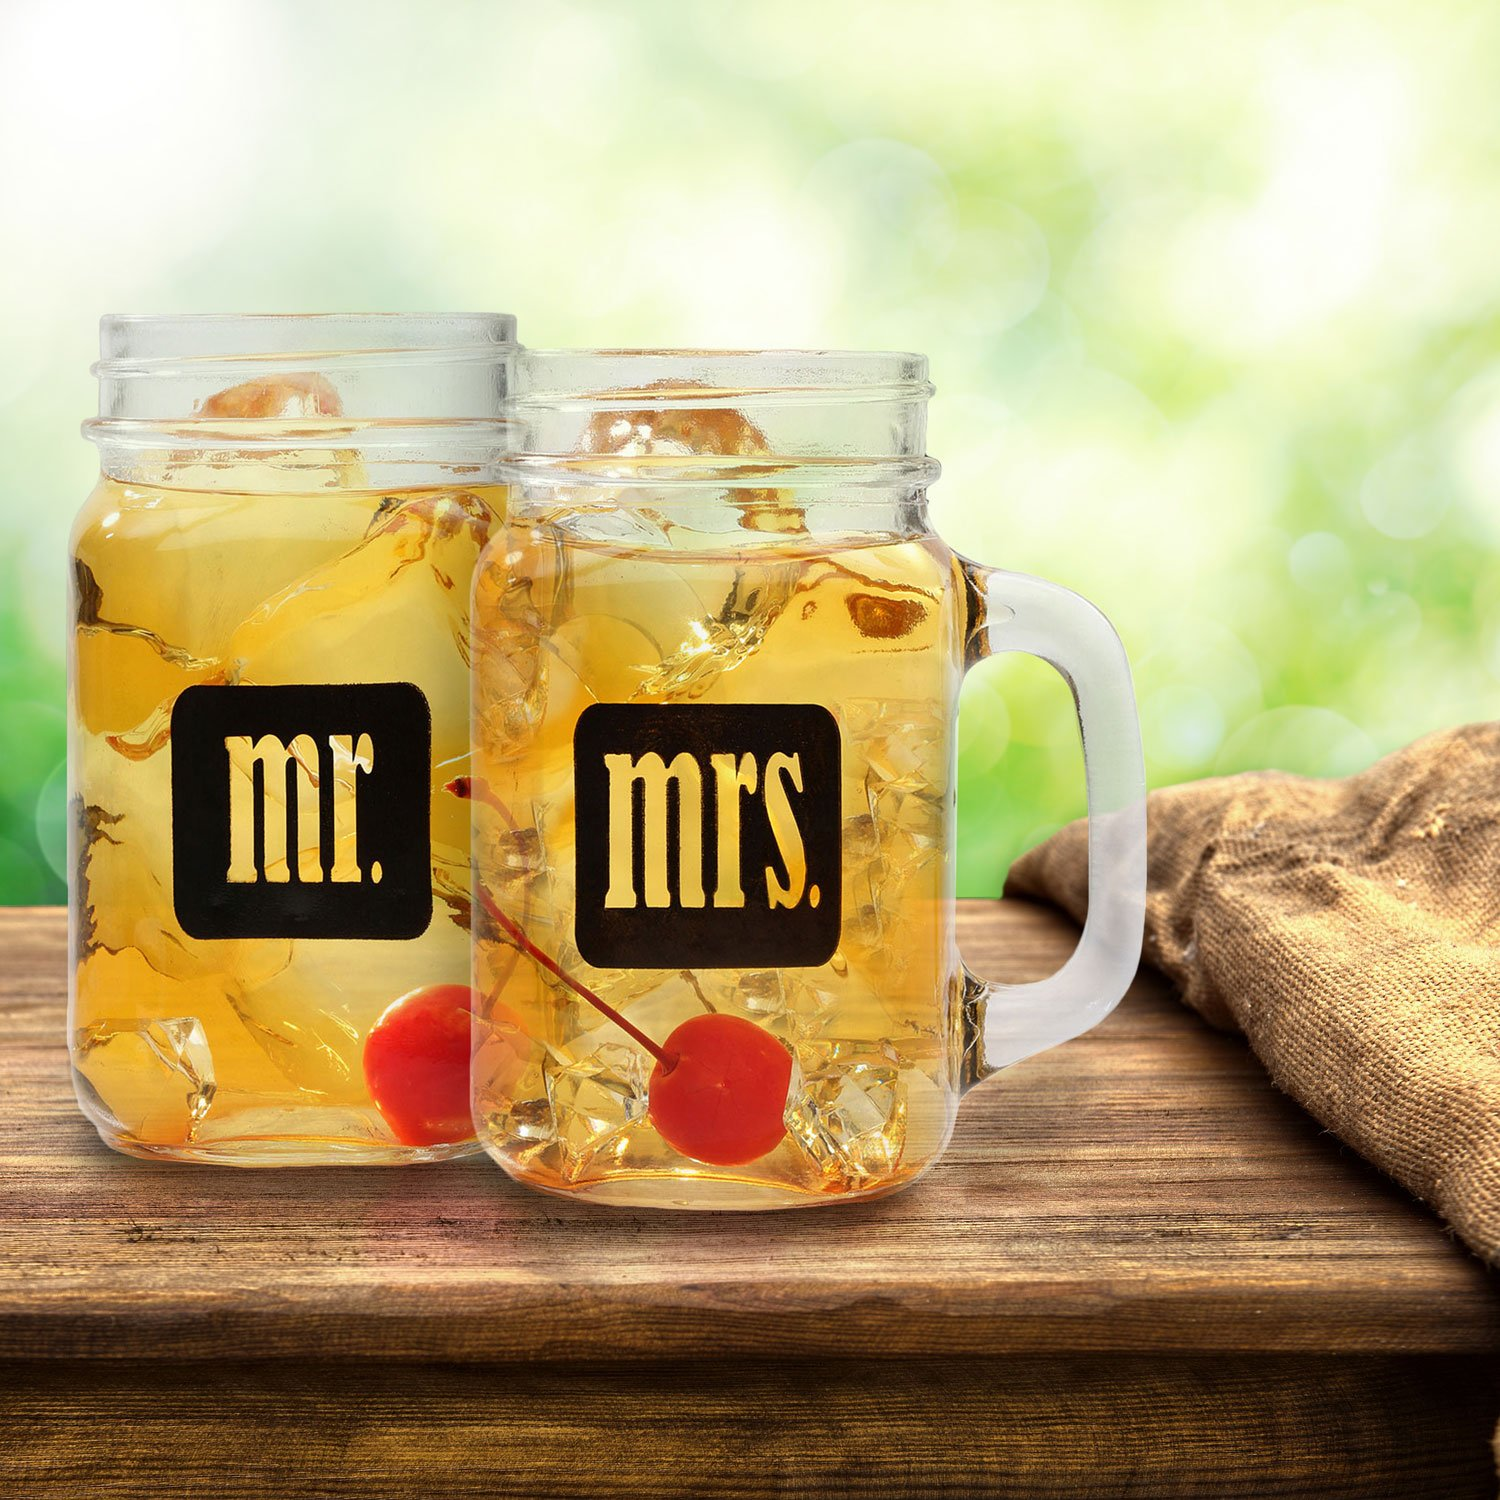 Mr. & Mrs. Mason Jars - Glass Drinking Glasses Set With Gift Box - For Couples - Engagement, Wedding, Anniversary, House Warming, Hostess Gift, 16 oz by Smart Tart Design (Image #3)